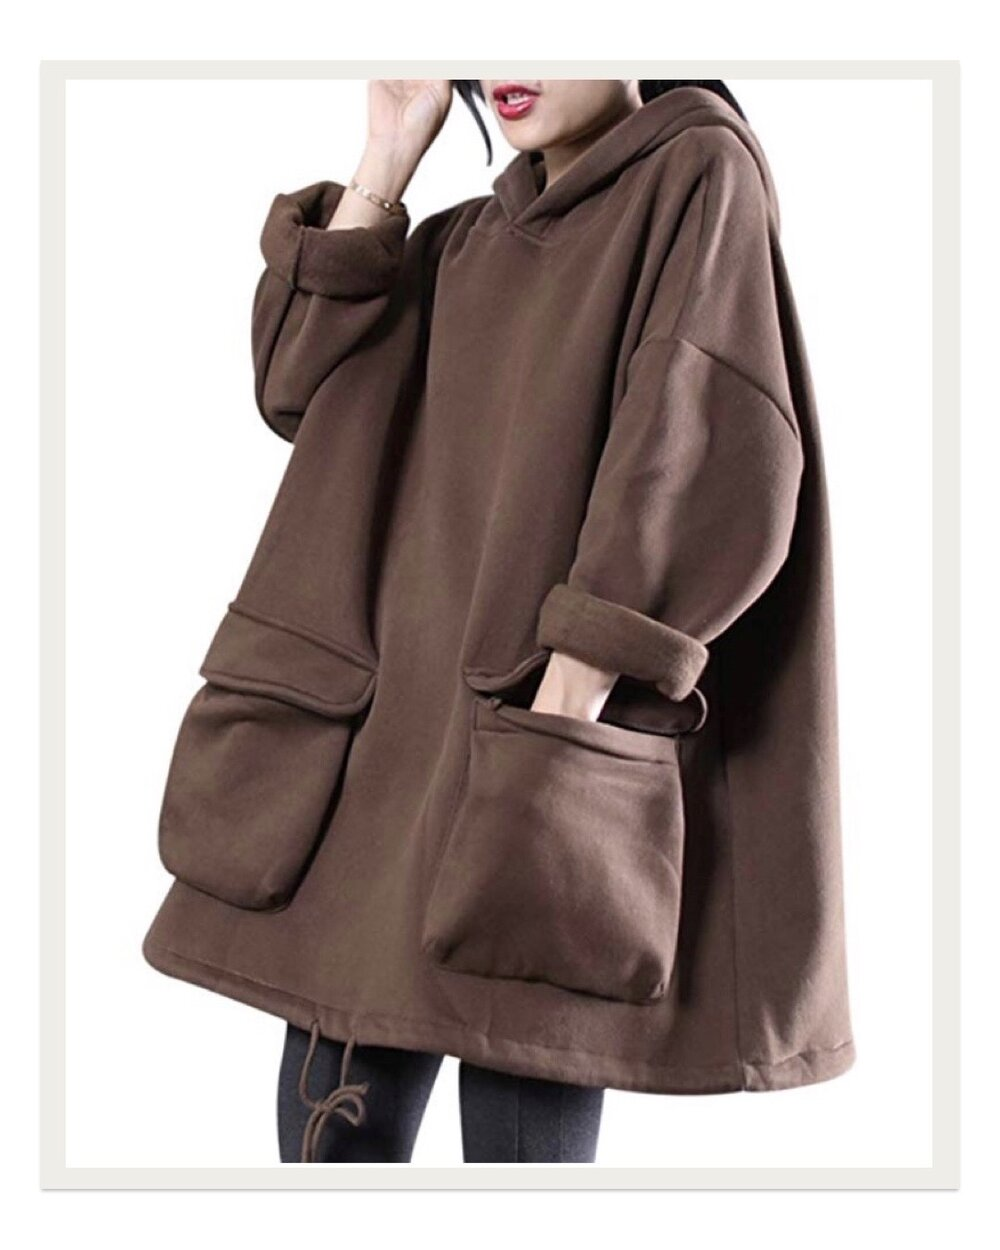 The oversized silhouette and giant pockets on this sweatshirt from Amazon make it look like something off of the runway. I love how cozy yet fashionable it is, and I will likely be living in it all winter.